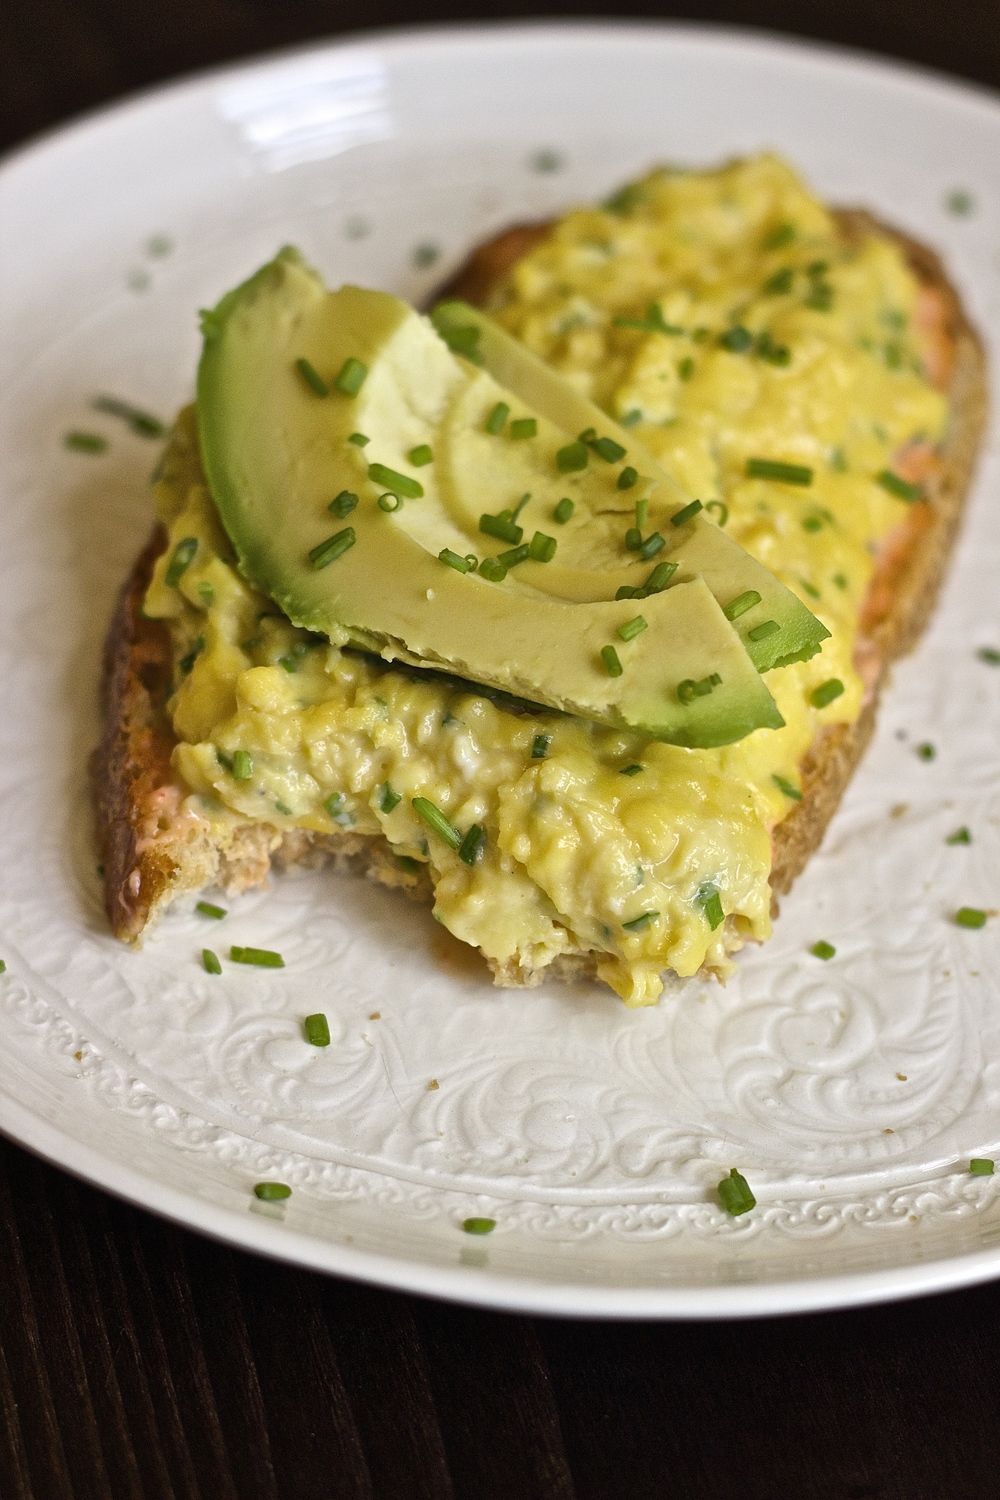 Creamiest Scrambled Egg Tartine with Sriracha Aioli, Goat Cheese, & Avocado | Kneading Home